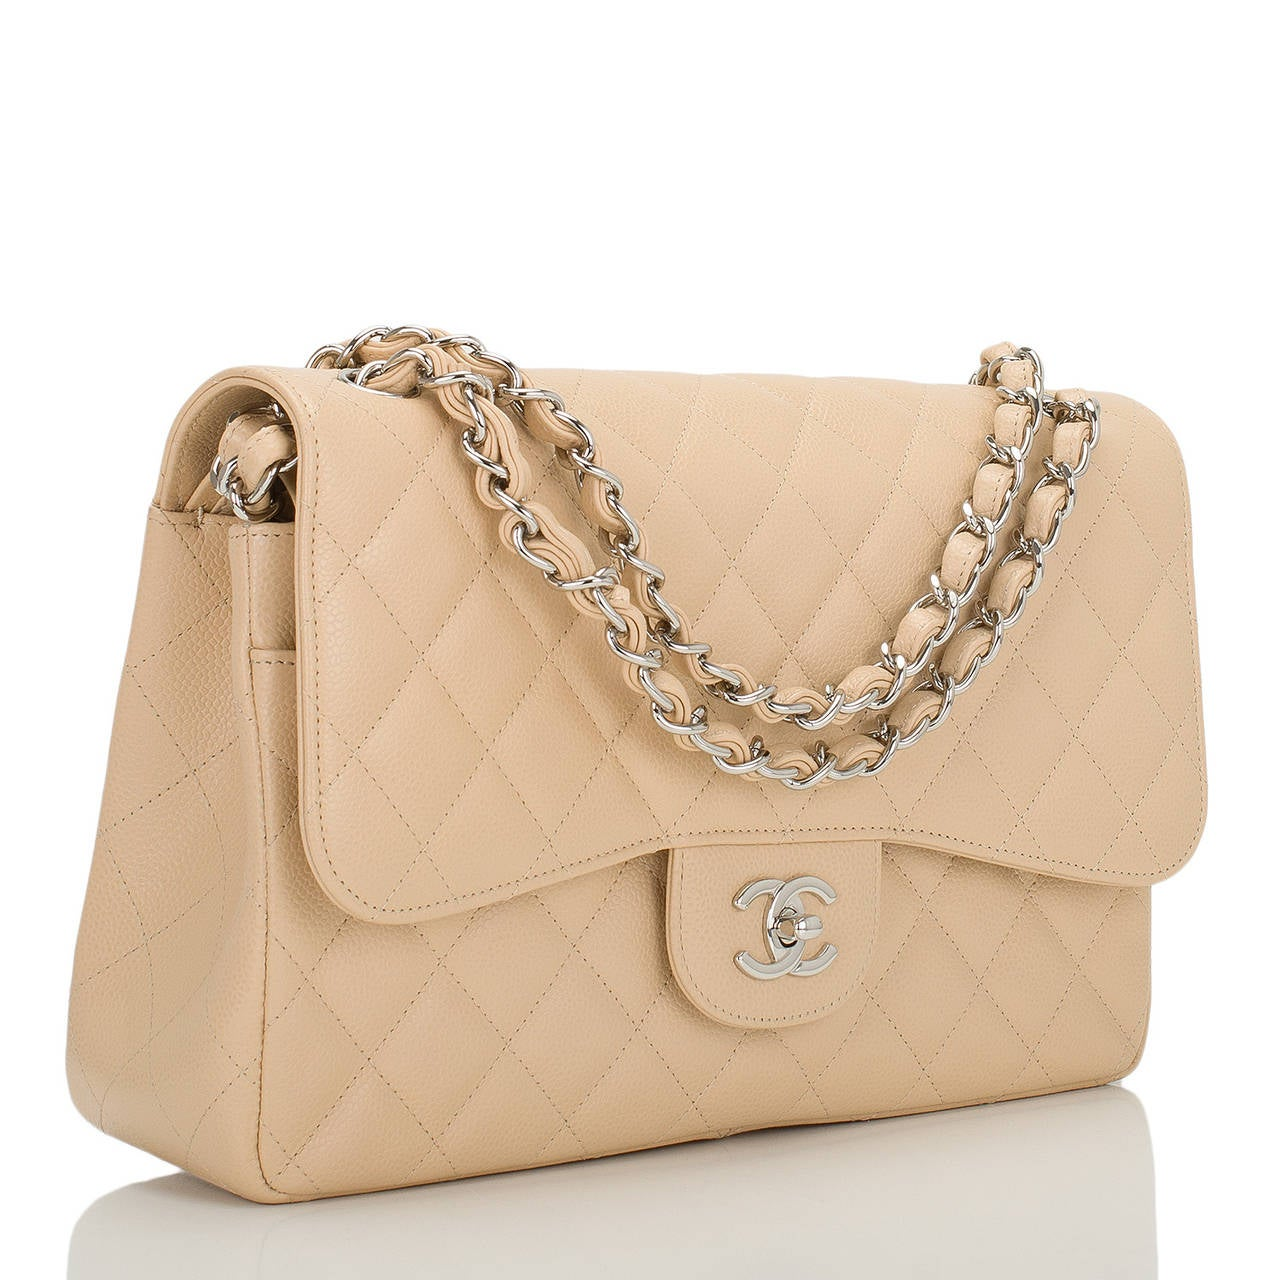 8ad982f41cfdaf Chanel Beige Quilted Caviar Jumbo Classic Double Flap Bag at 1stdibs